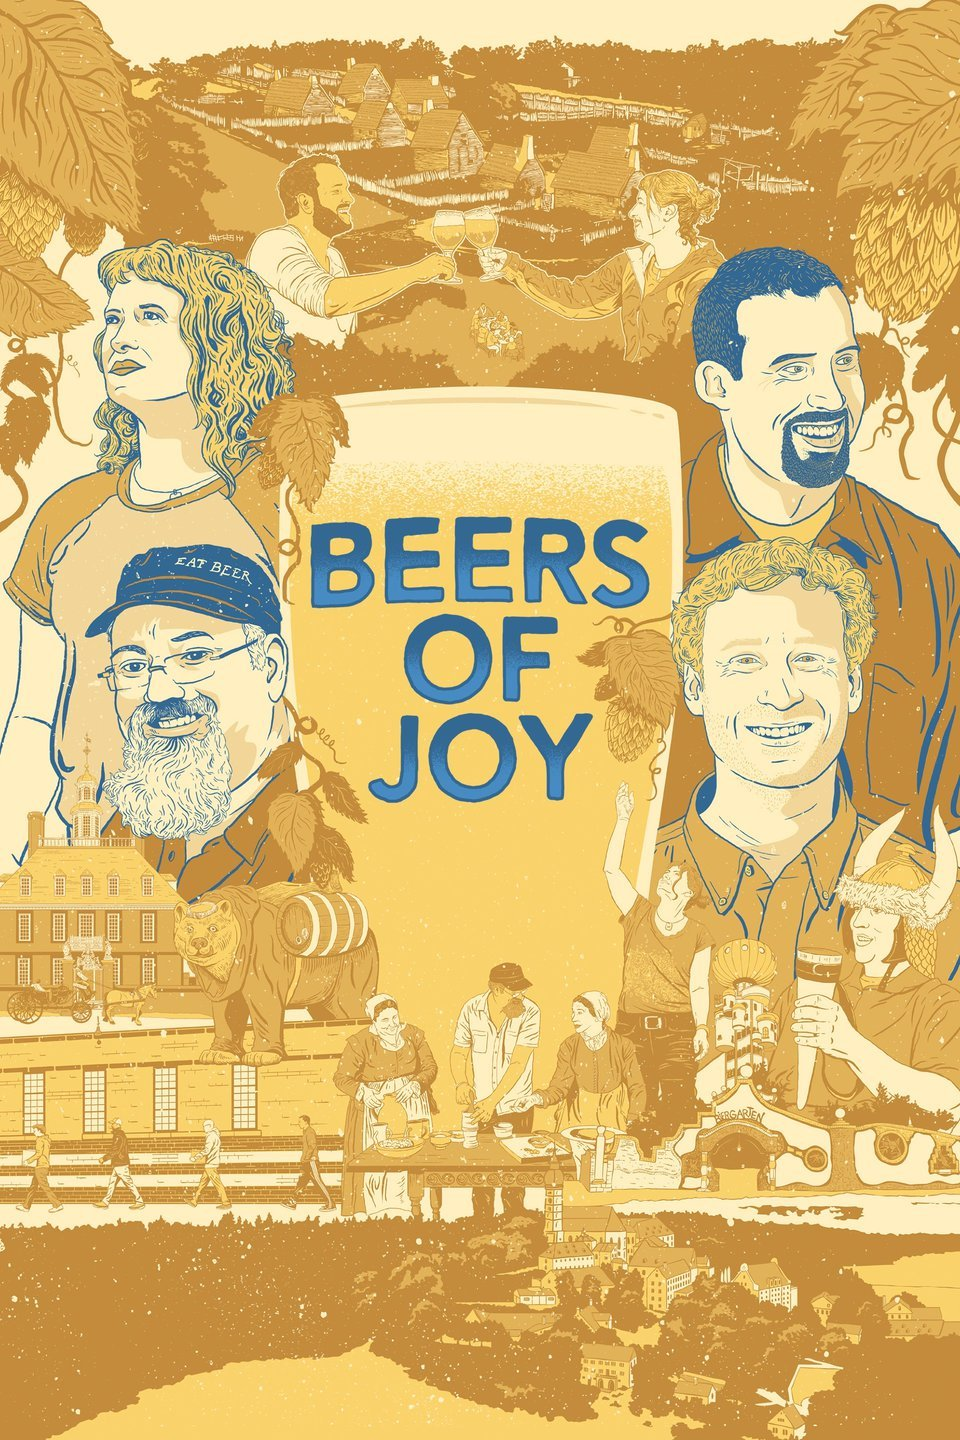 'Beers of Joy' Documentary Coming to Theaters March 1st